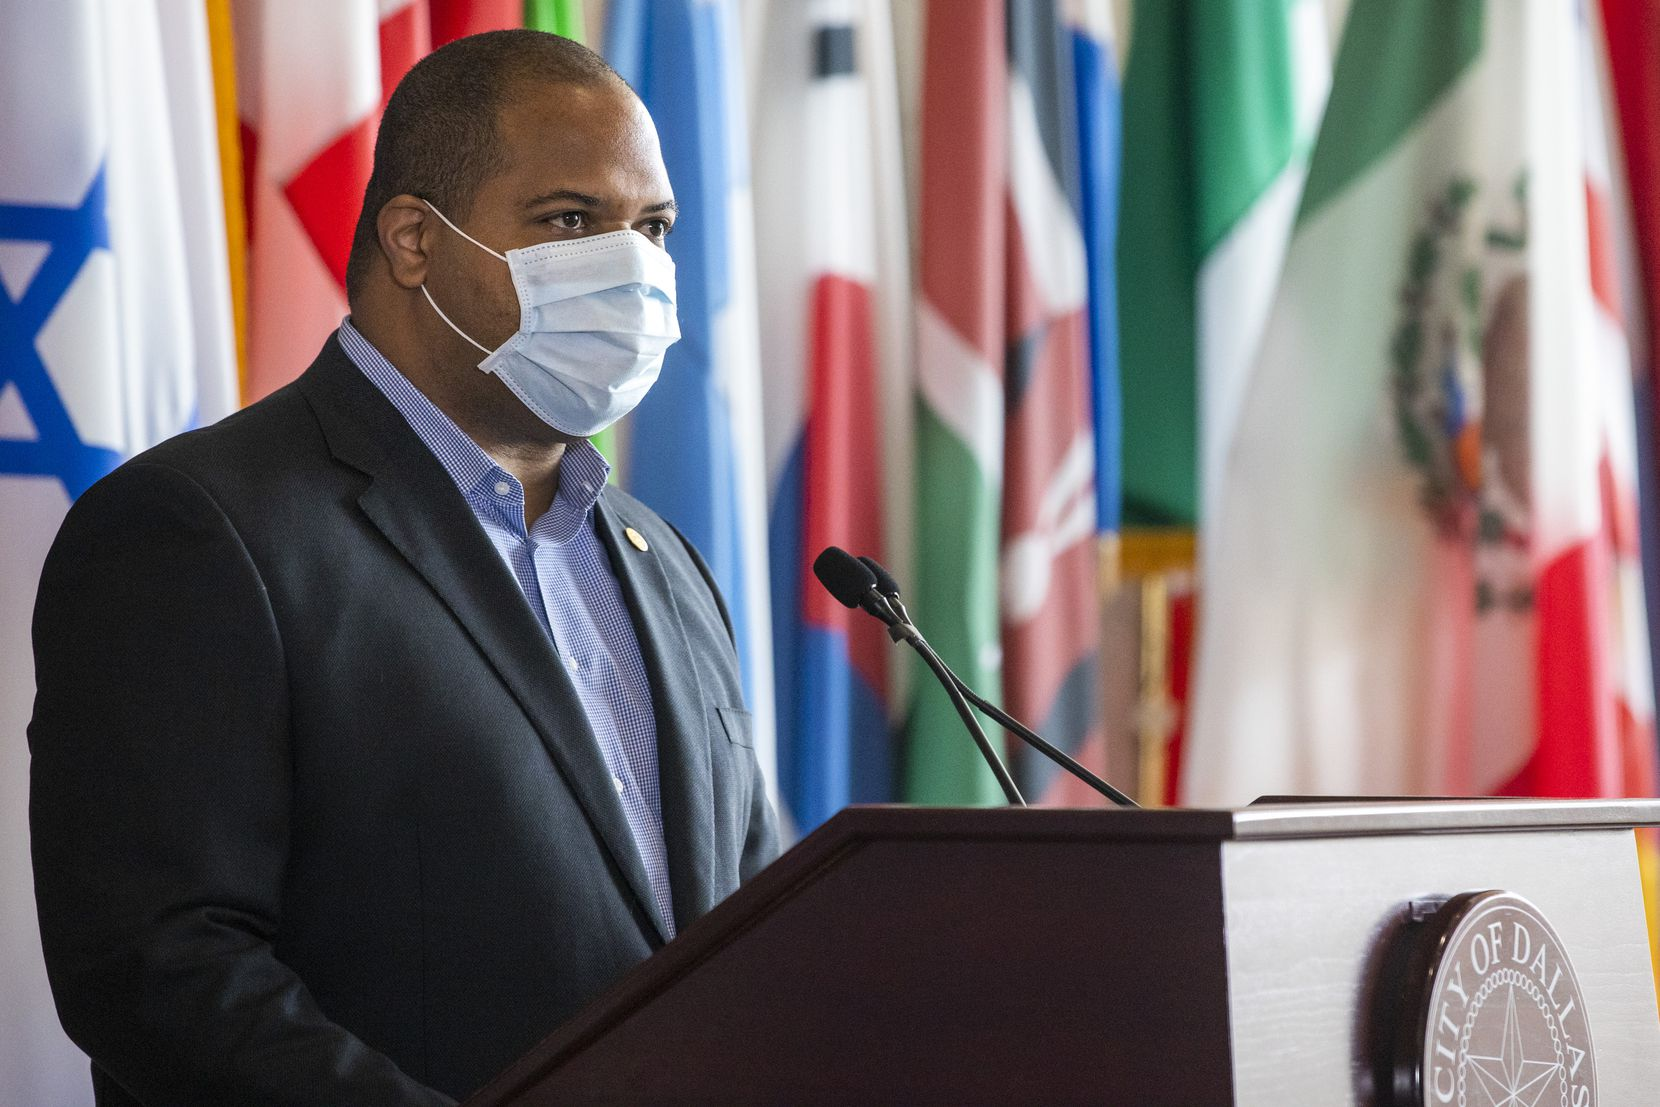 Mayor Eric Johnson names Dr. Kelvin Baggett as the city's new COVID-19 Health and Healthcare Access Czar during a press conference at Dallas City Hall in Dallas on Tuesday, May 12, 2020. Johnson said Baggett will work with the city, county, and hospital systems to recommend ways to improve access to healthcare, testing, and essential services during the COVID-19 pandemic.